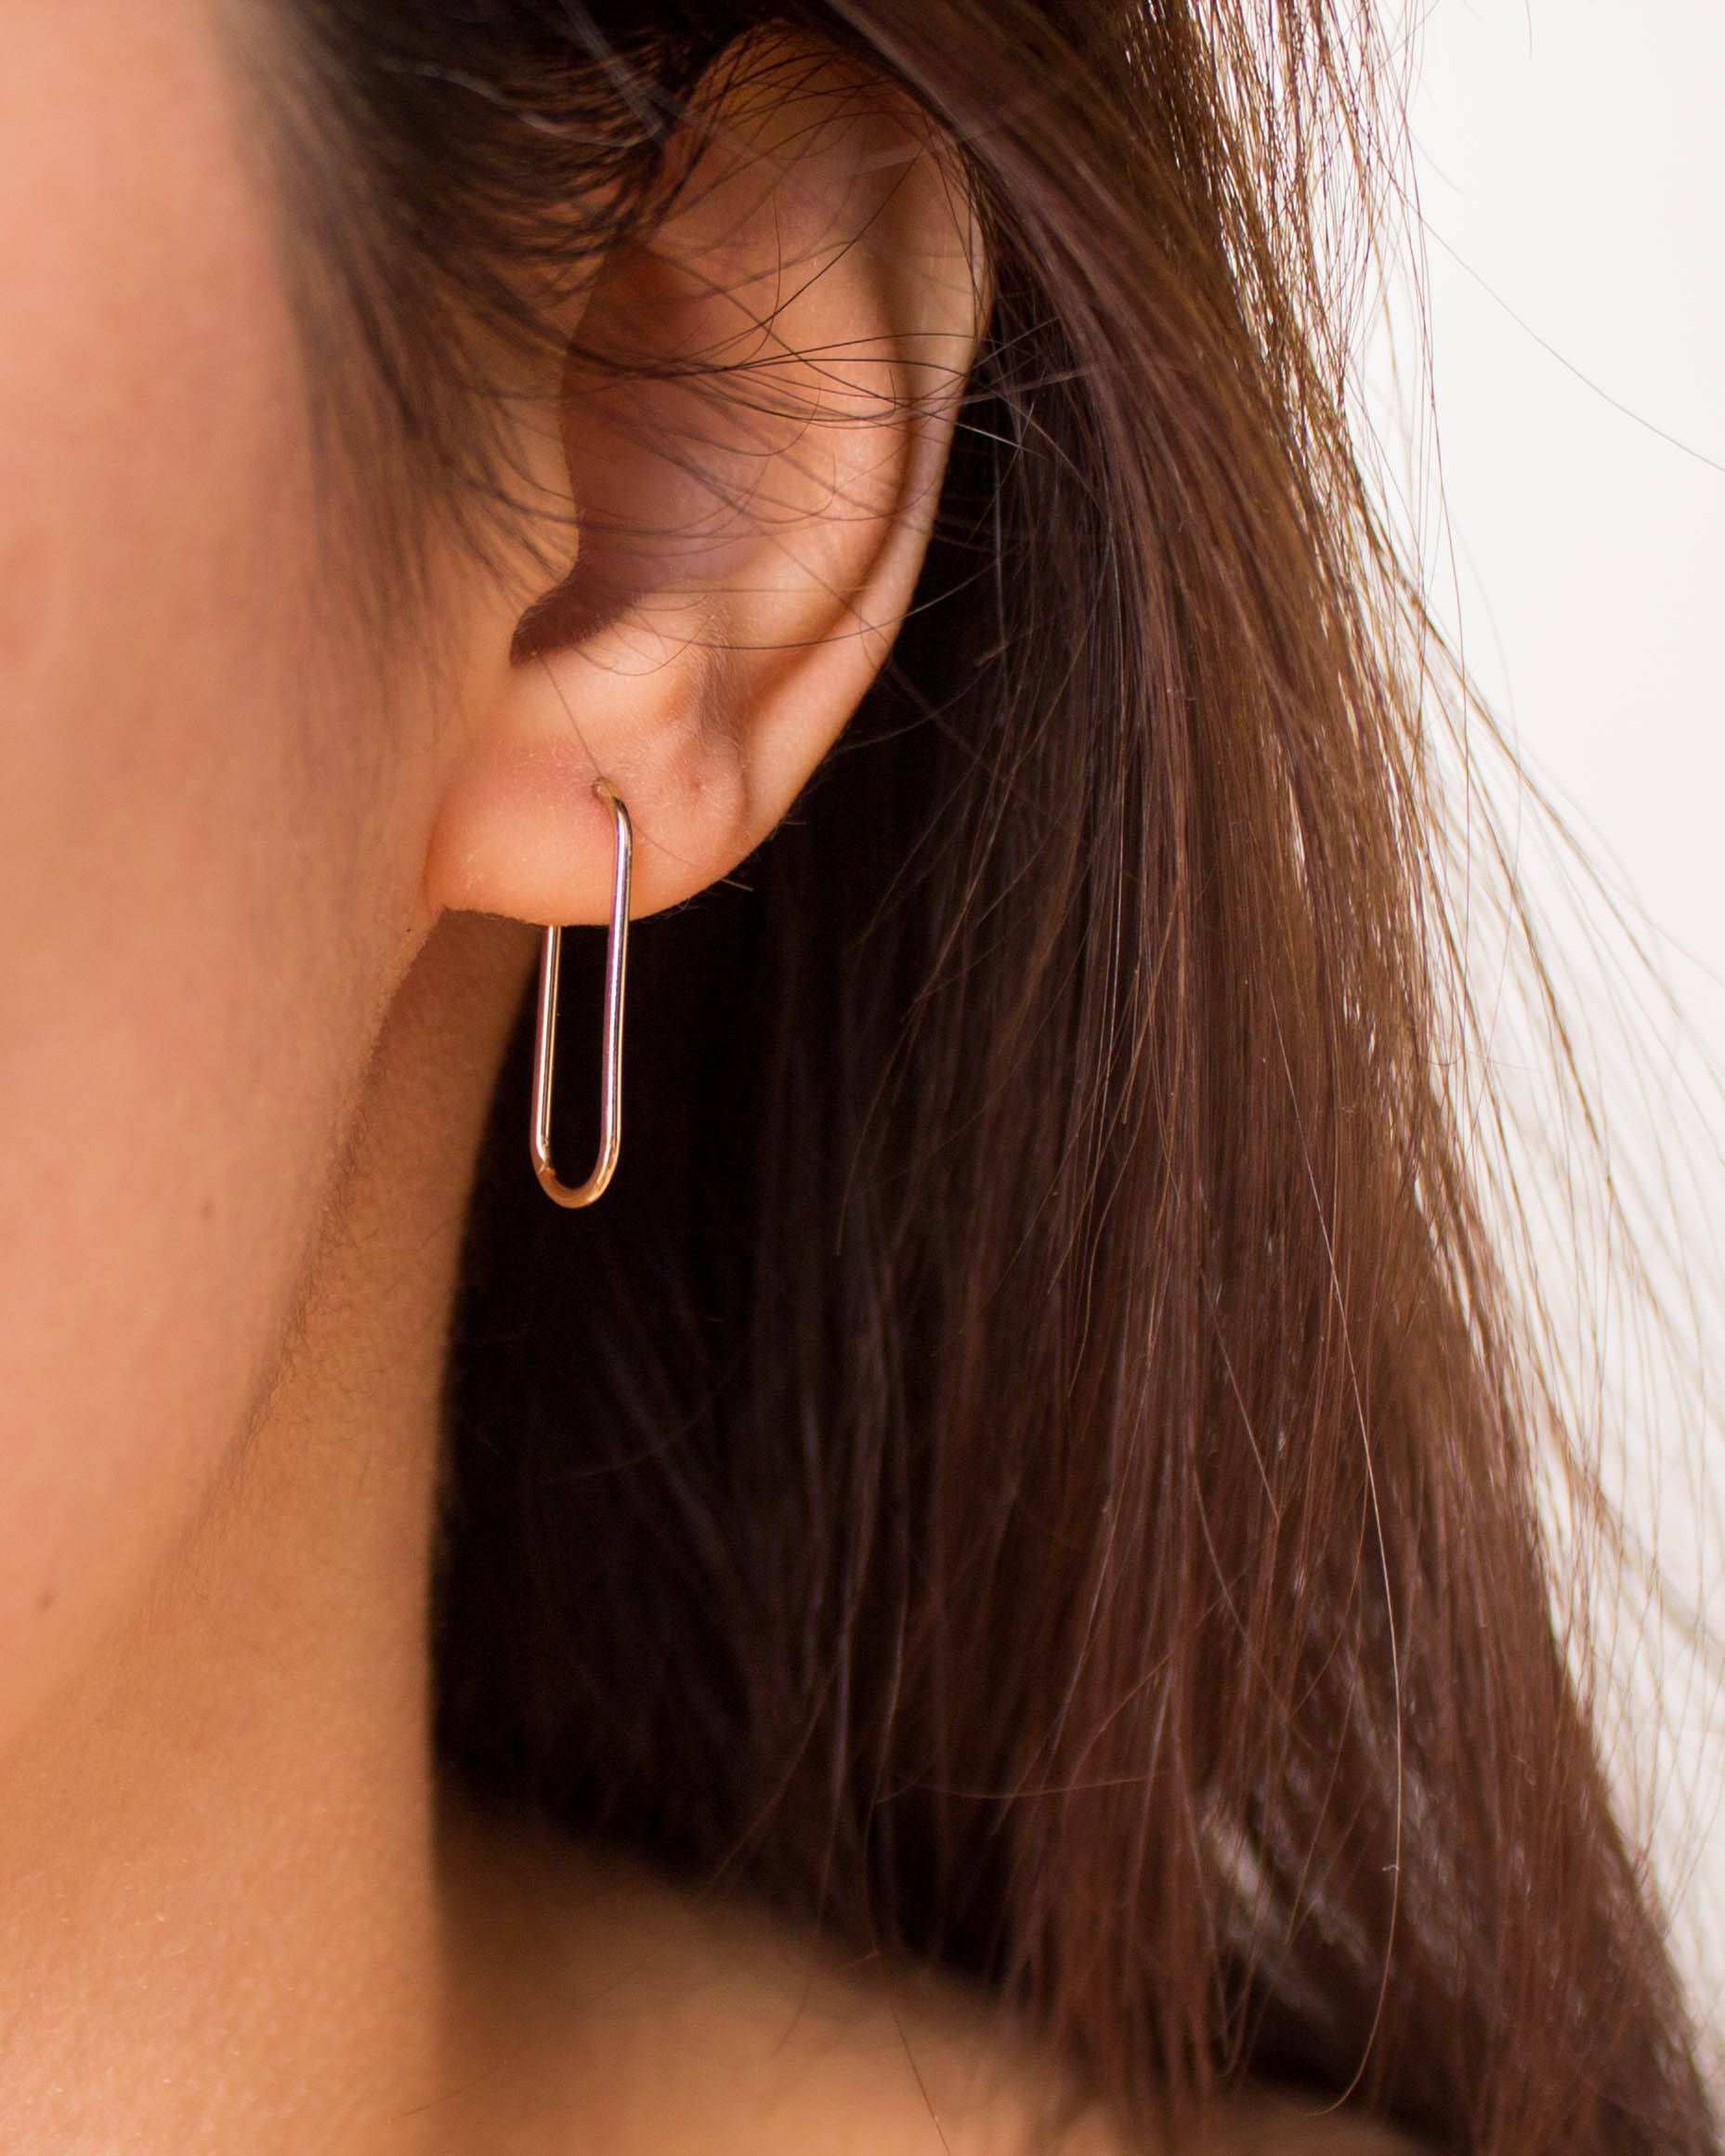 90s nose piercing  Paperclip  If you are a s kid you might remember that helpful